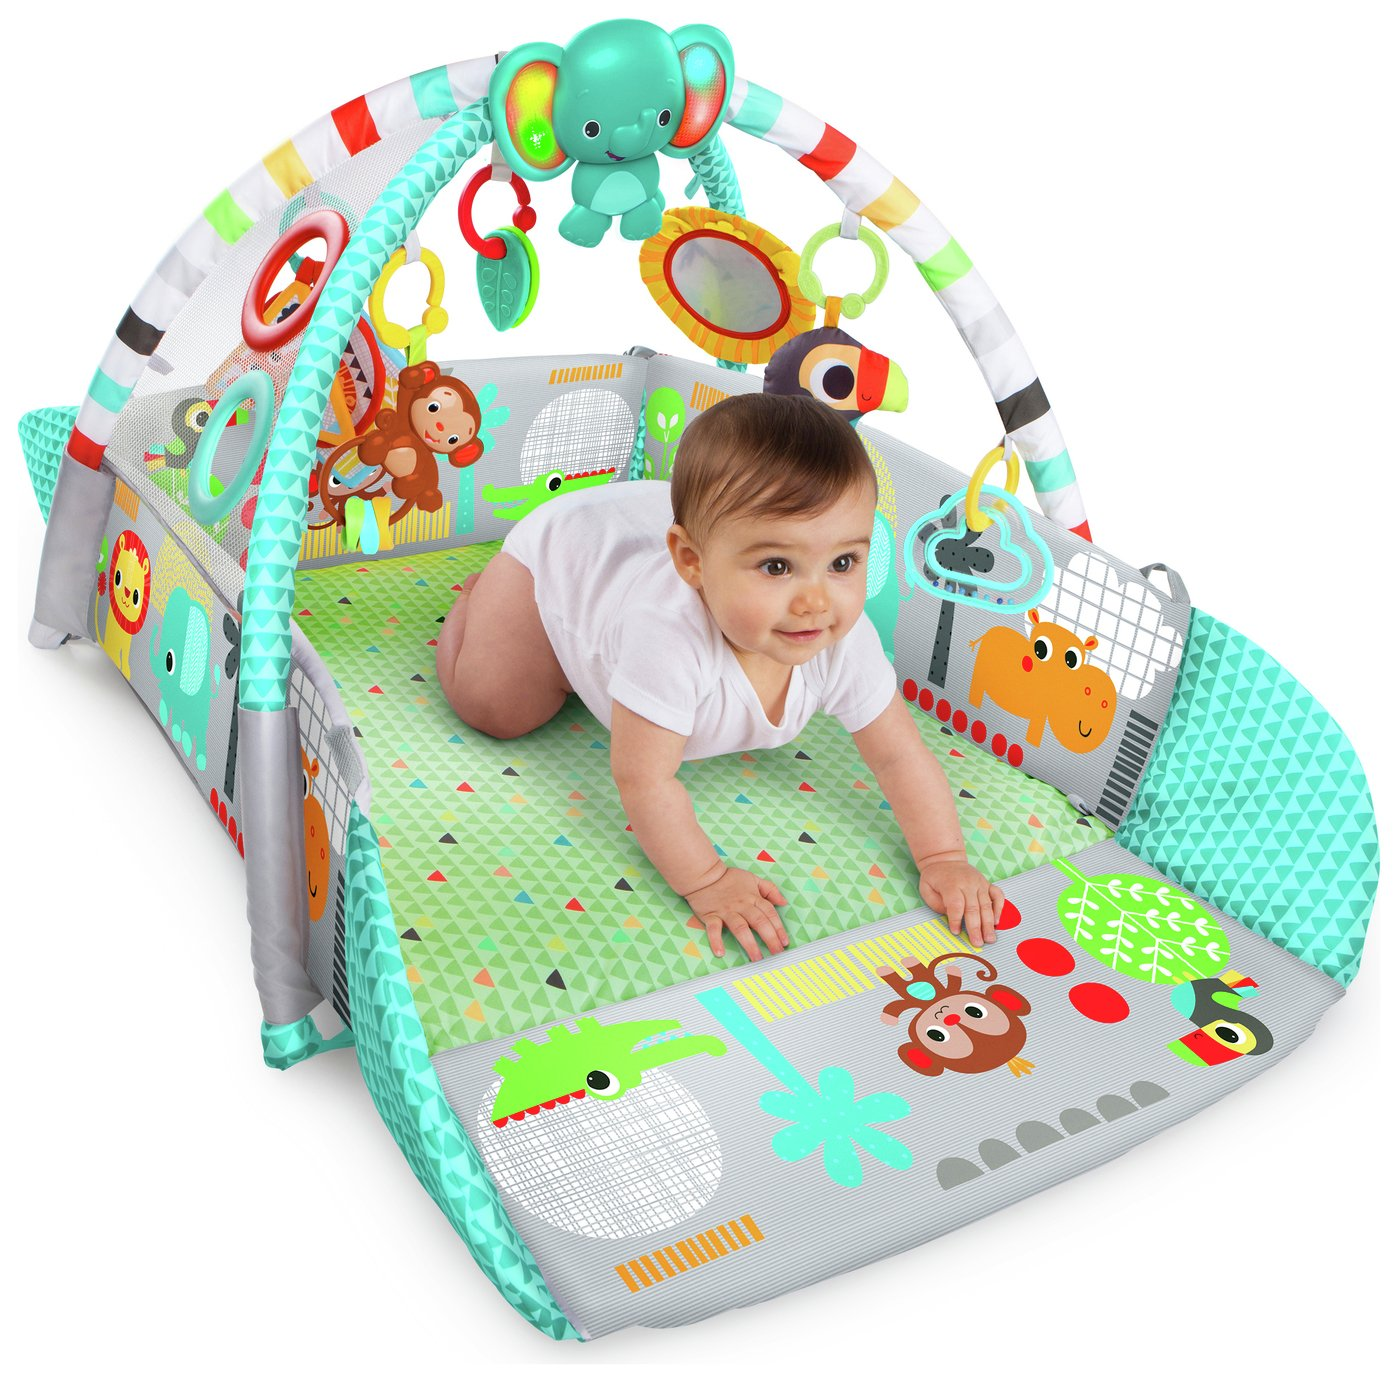 Image of Bright Starts 5-in-1 Your Way Ball Play Activity Gym